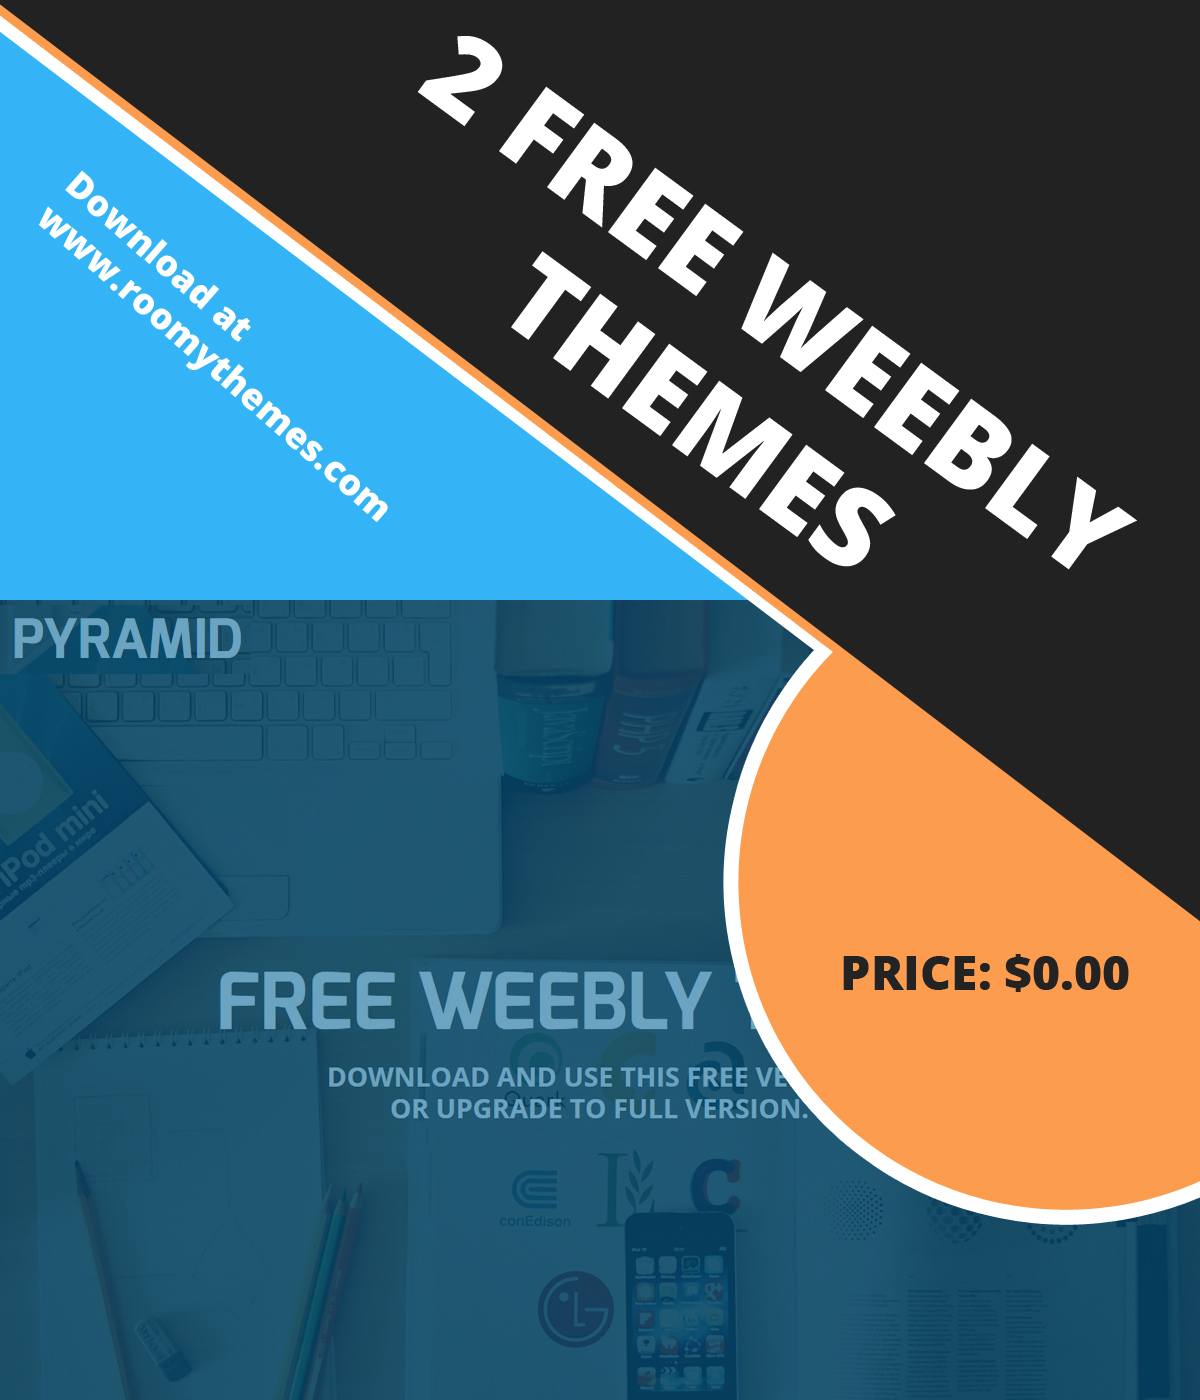 2 New Free Weebly Themes To Download - Roomy Themes